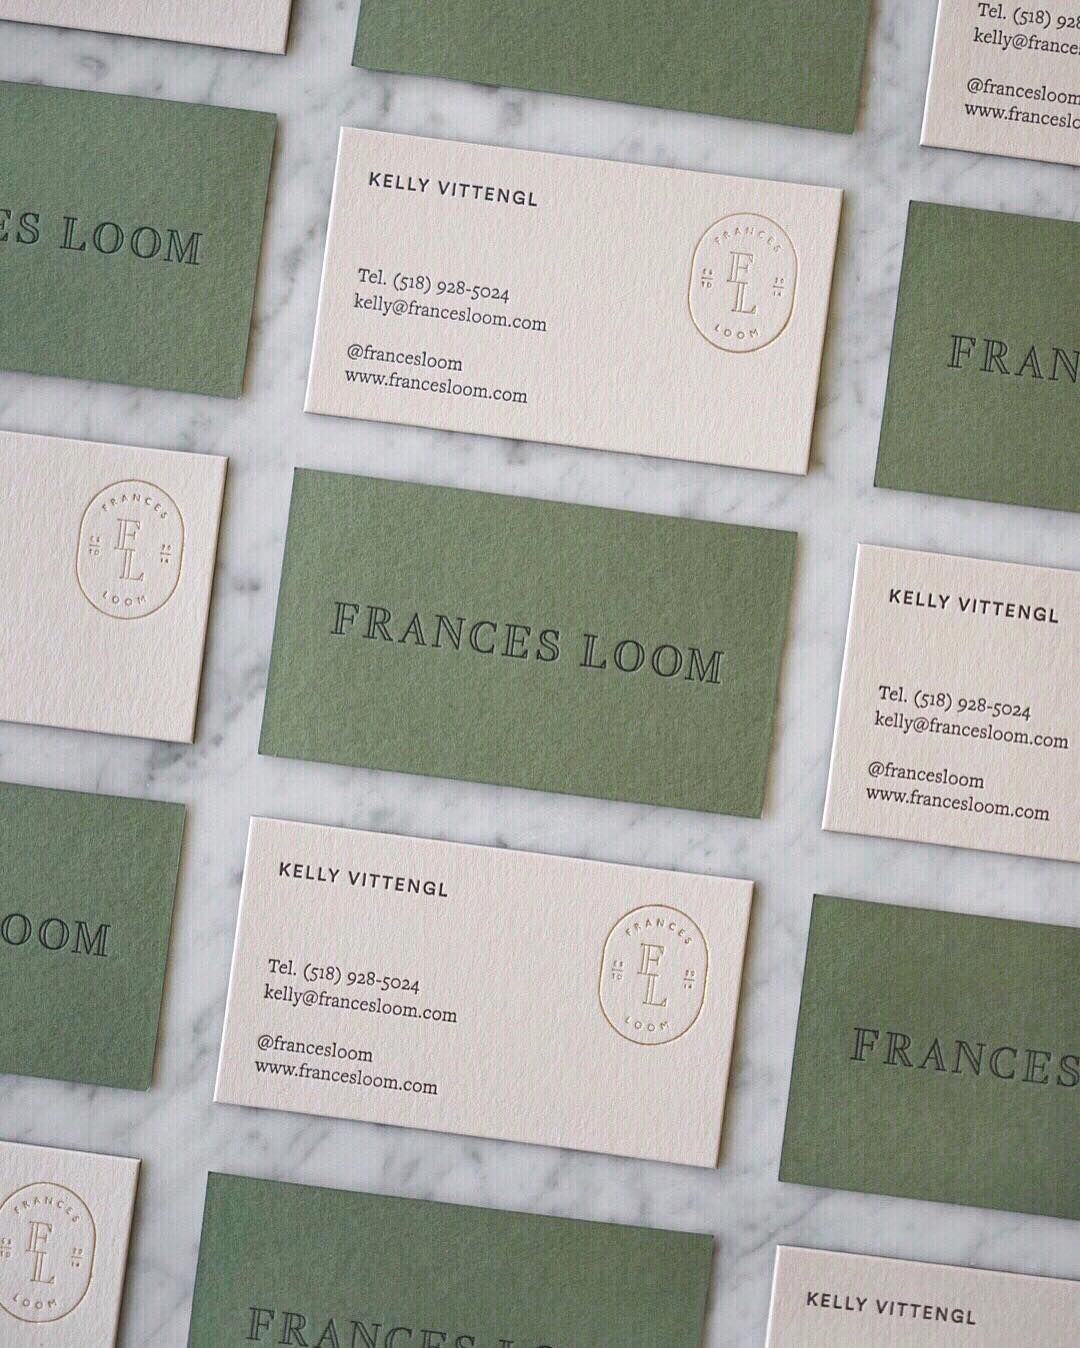 Brand Identity And Business Cards For Frances Loom Jessica Comin Letterpress Business Card Design Letterpress Business Cards Business Card Design Inspiration